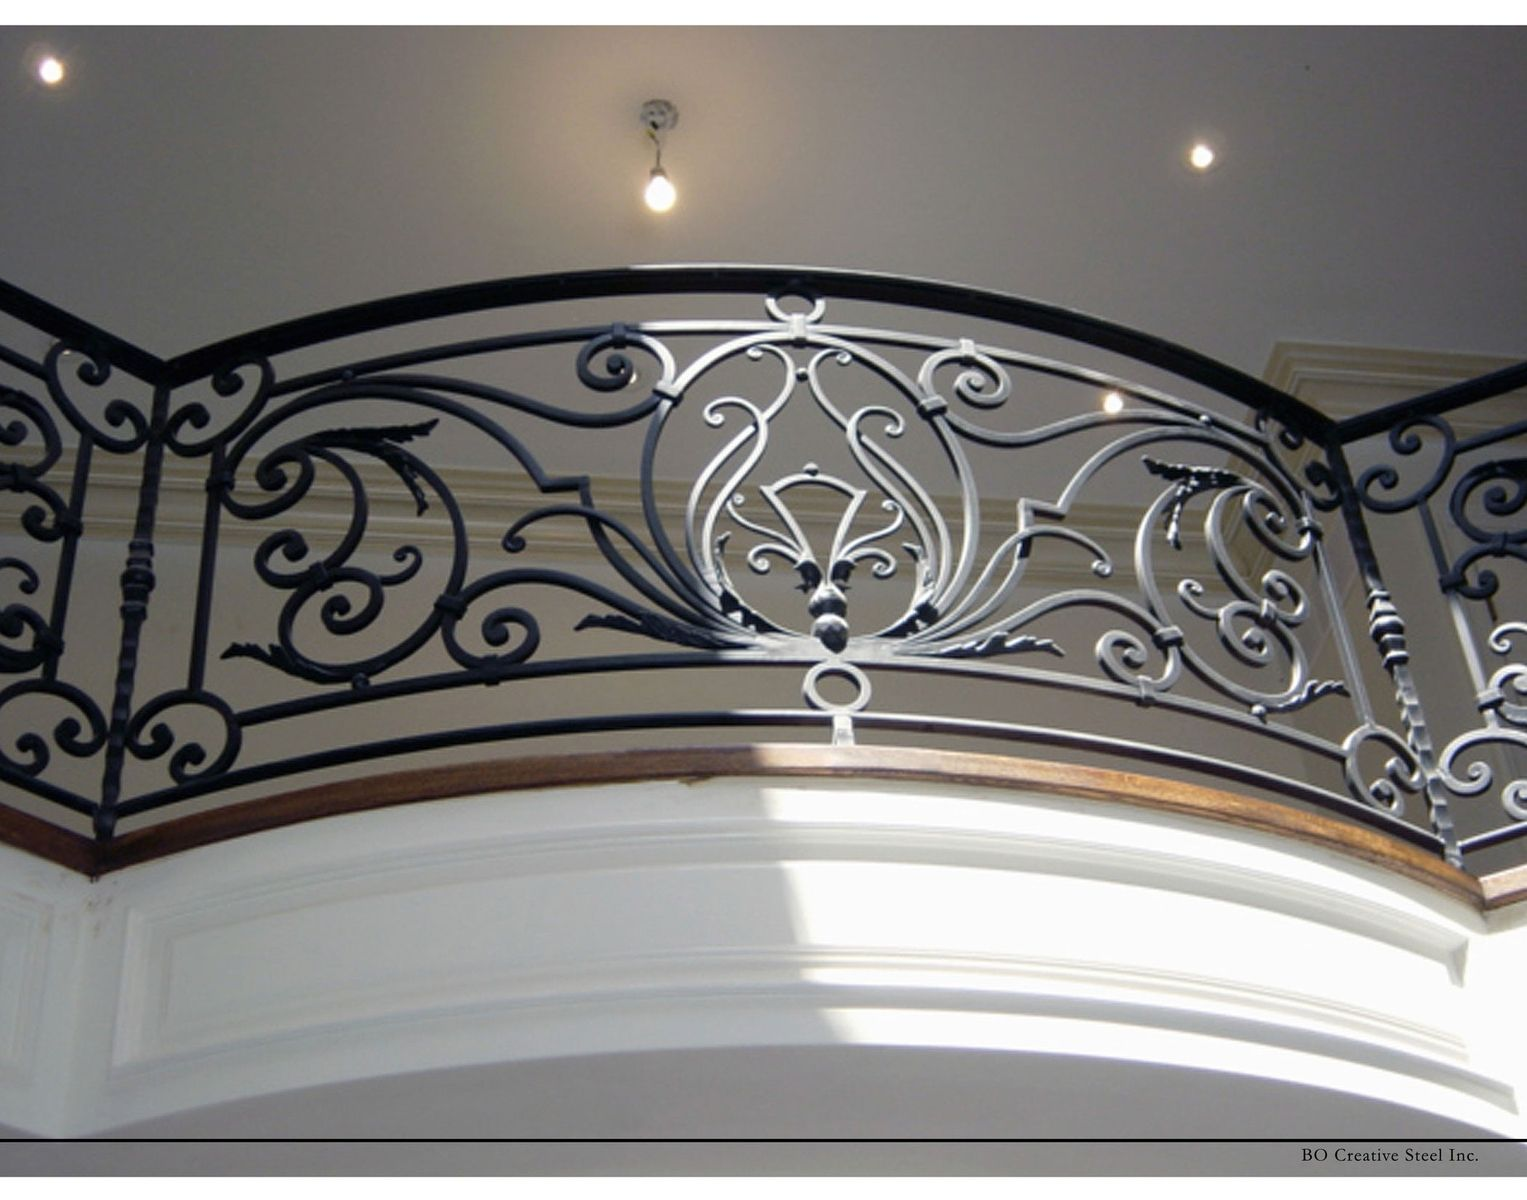 A Custom Handmade Forged Iron Railing That Defines An Entry With